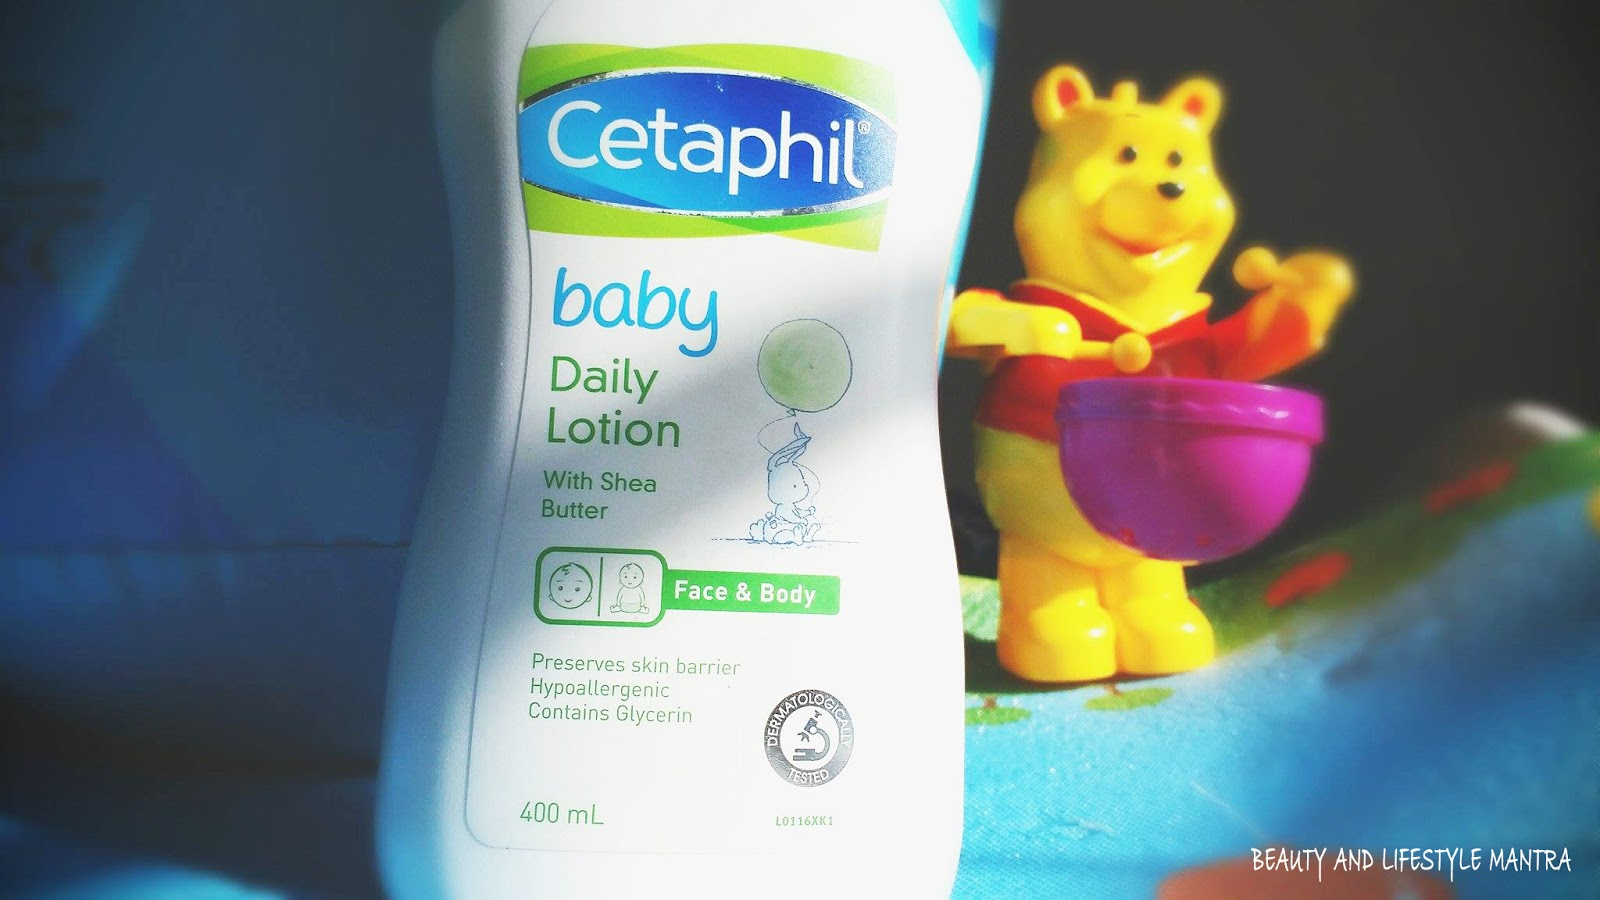 Review Cetaphil Baby Daily Lotion With Shea Butter